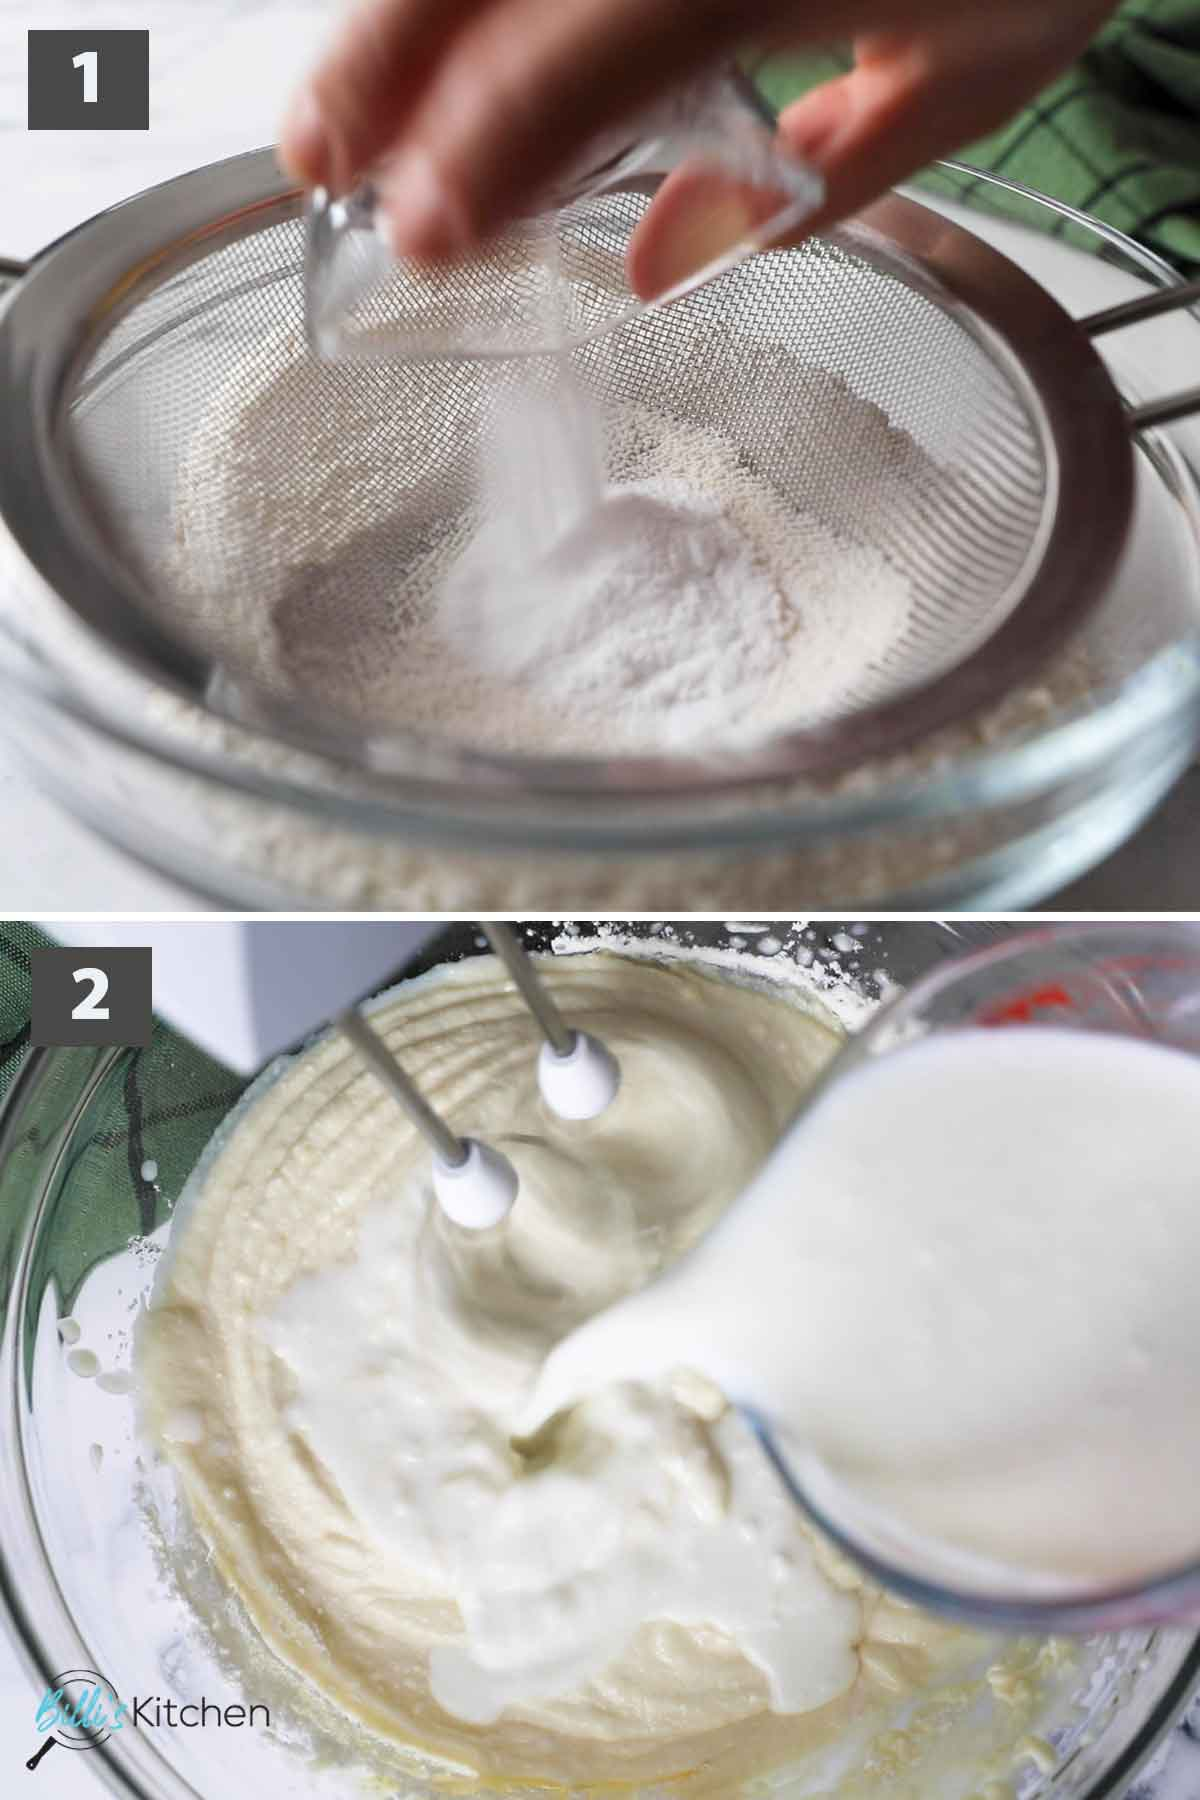 Updated first part of a collage of images showing the step by step process on how to make cherry muffins at home.